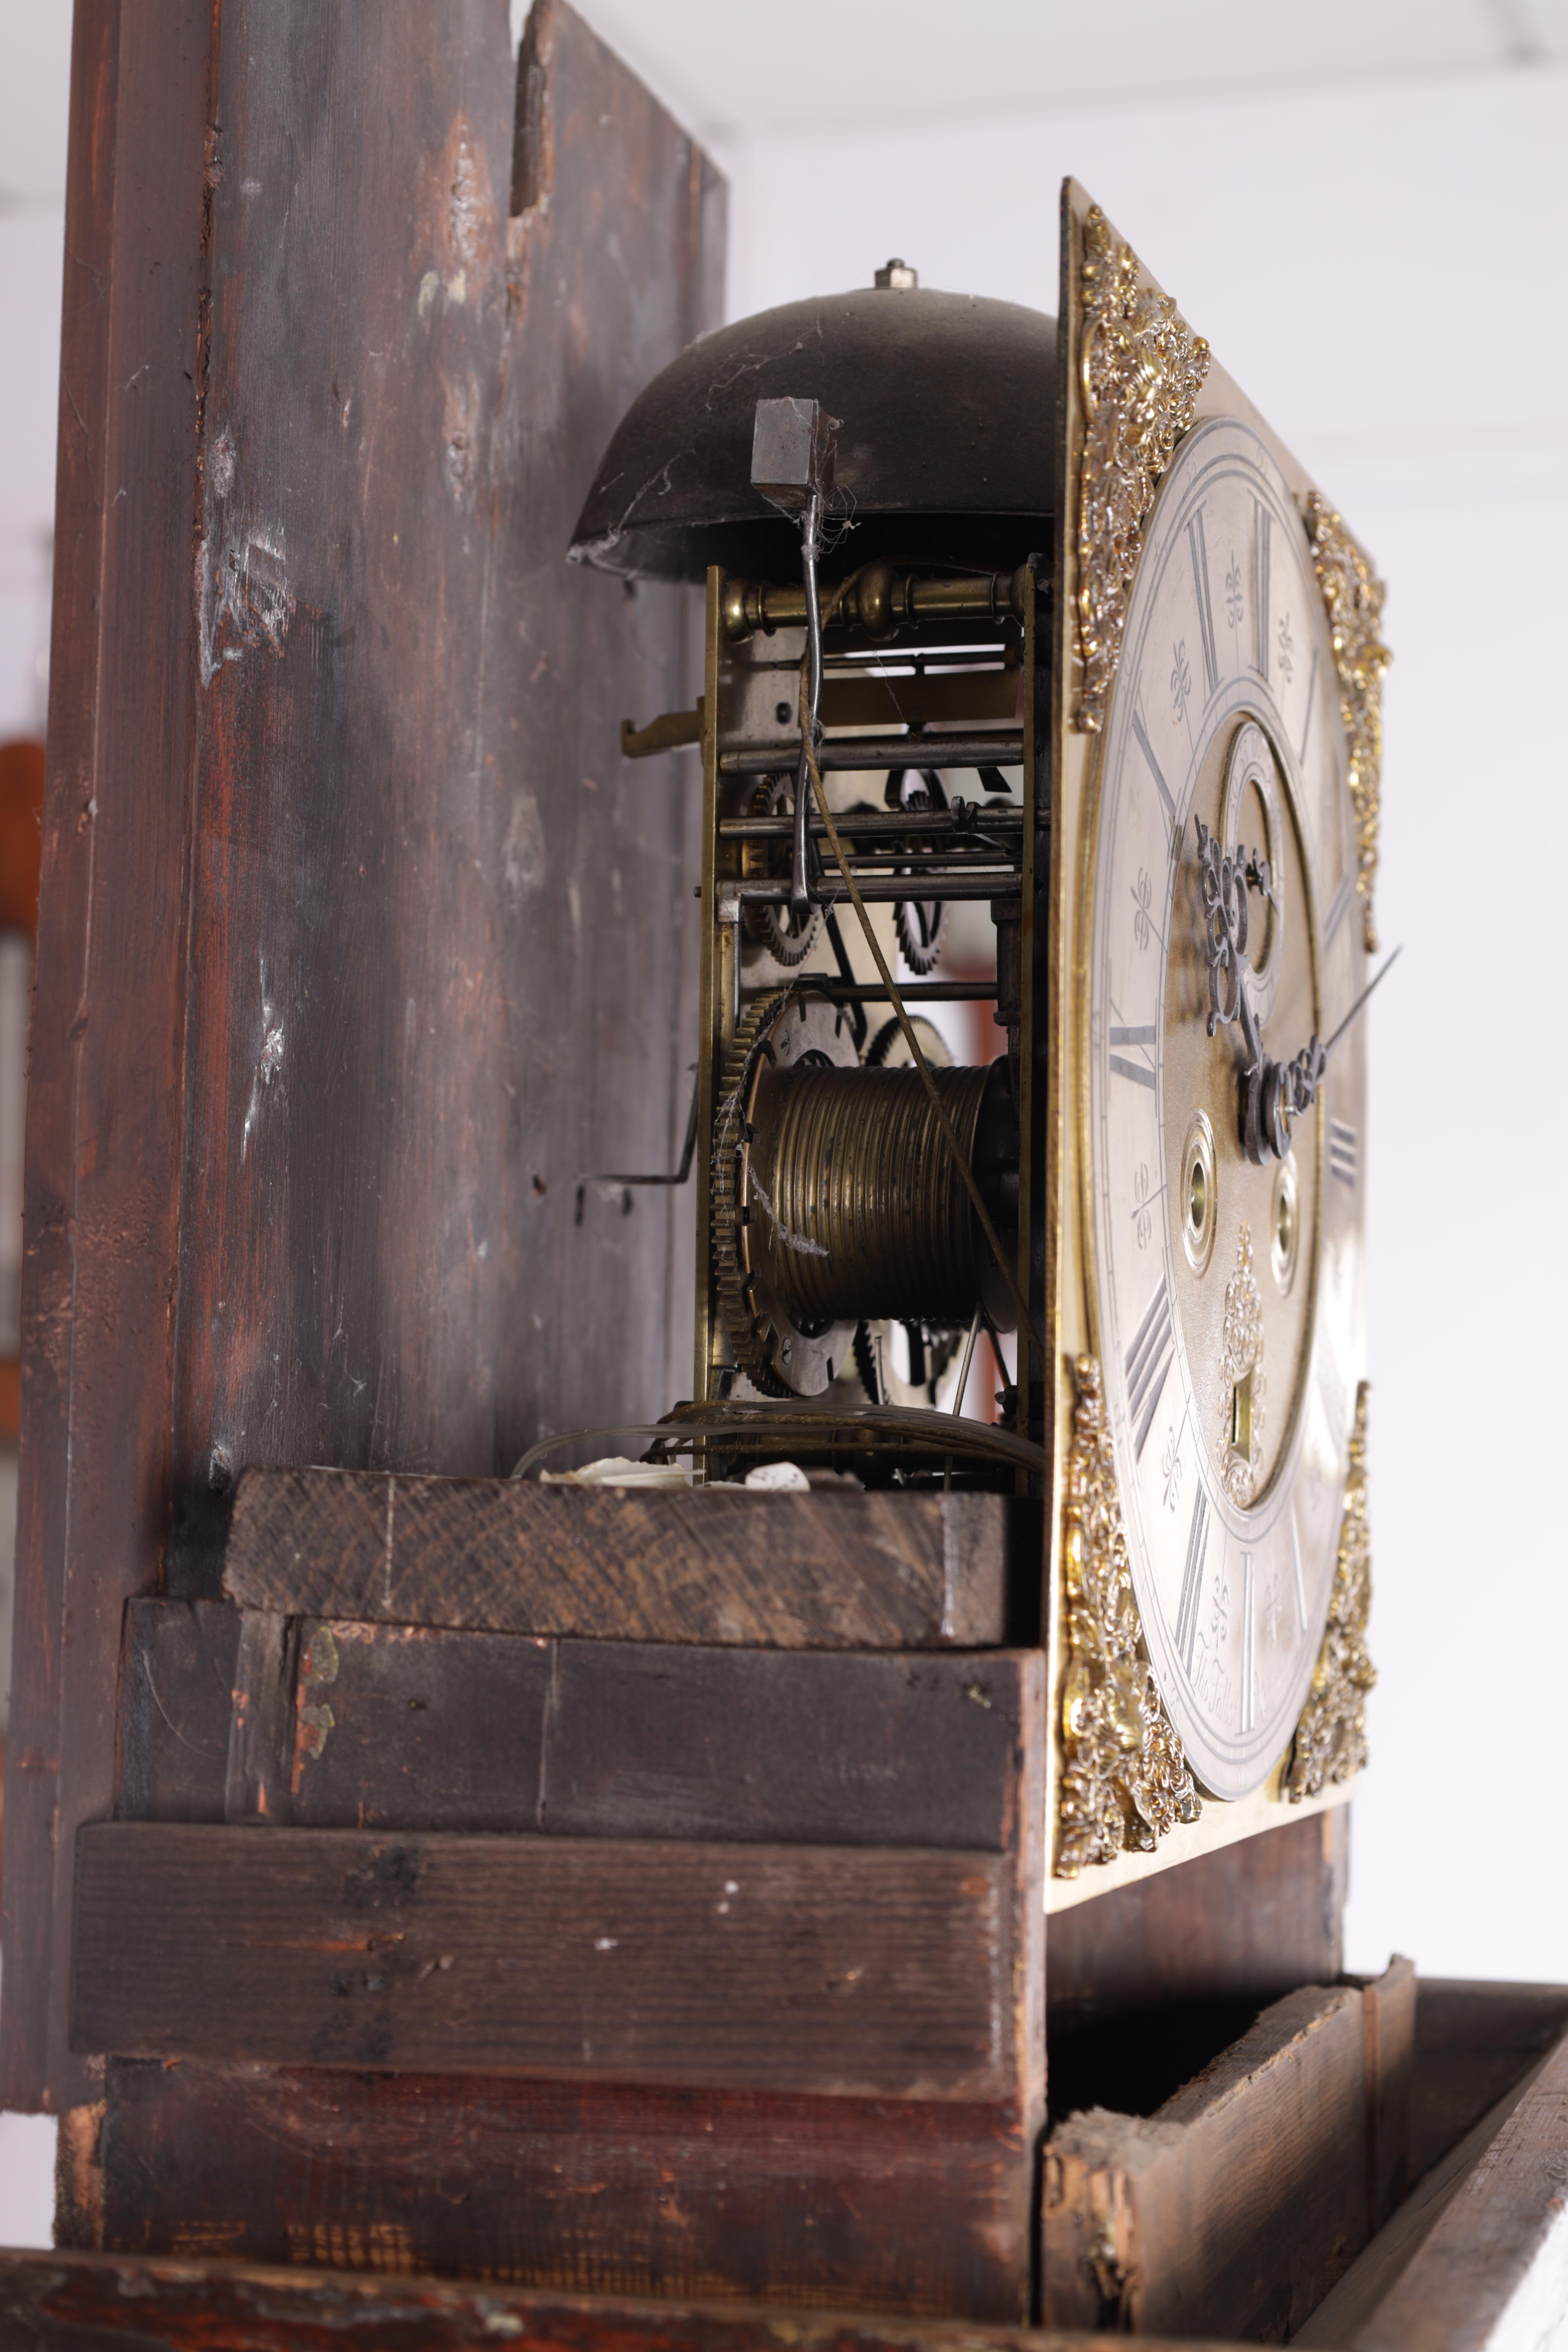 """THOMAS TALBOT, NAMPTWICH (NANTWICH) AN EARLY 18TH CENTURY 11"""" BRASS EIGHT-DAY LONGCASE CLOCK in a - Image 2 of 5"""